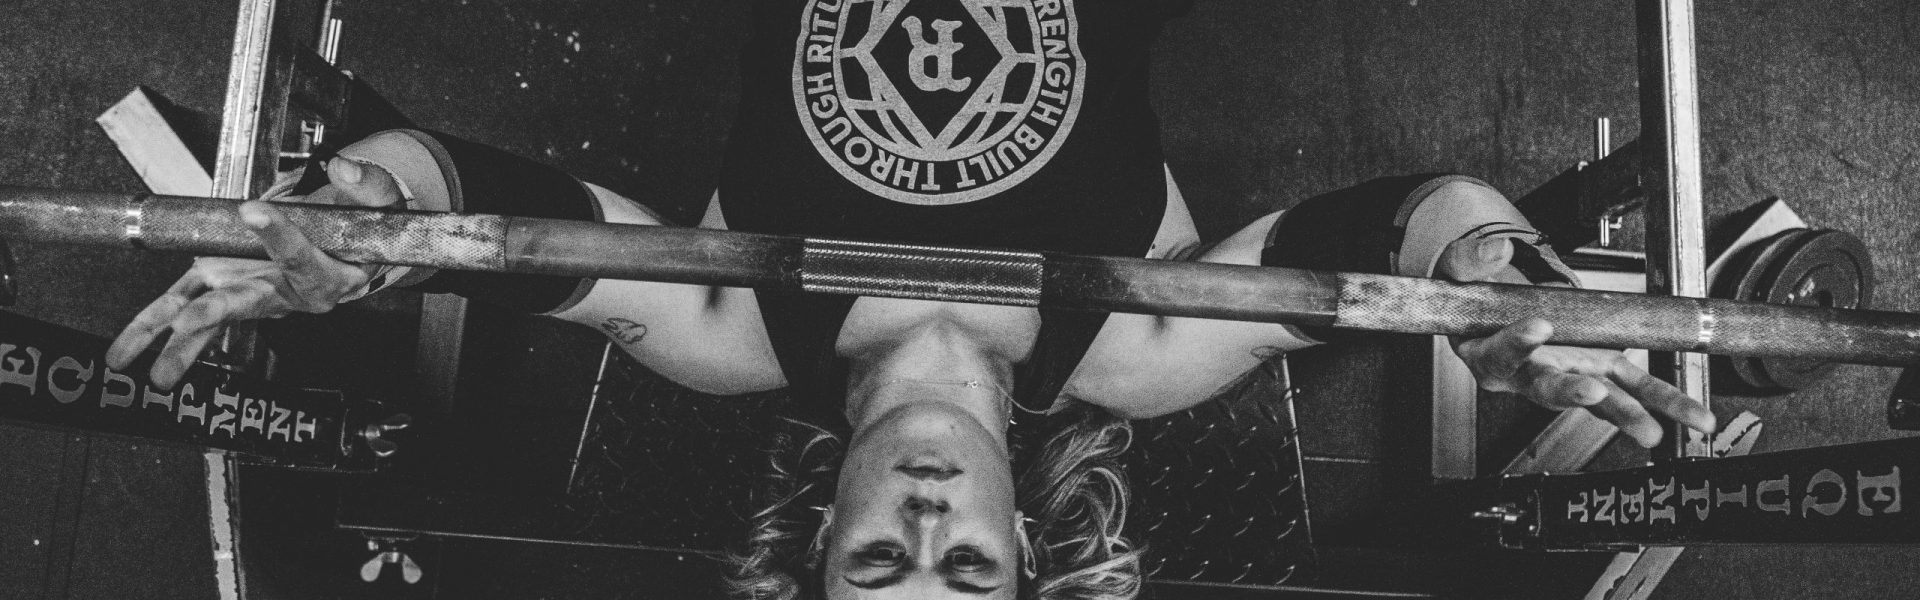 black and white image lifting weight on bench, insurance for fitness